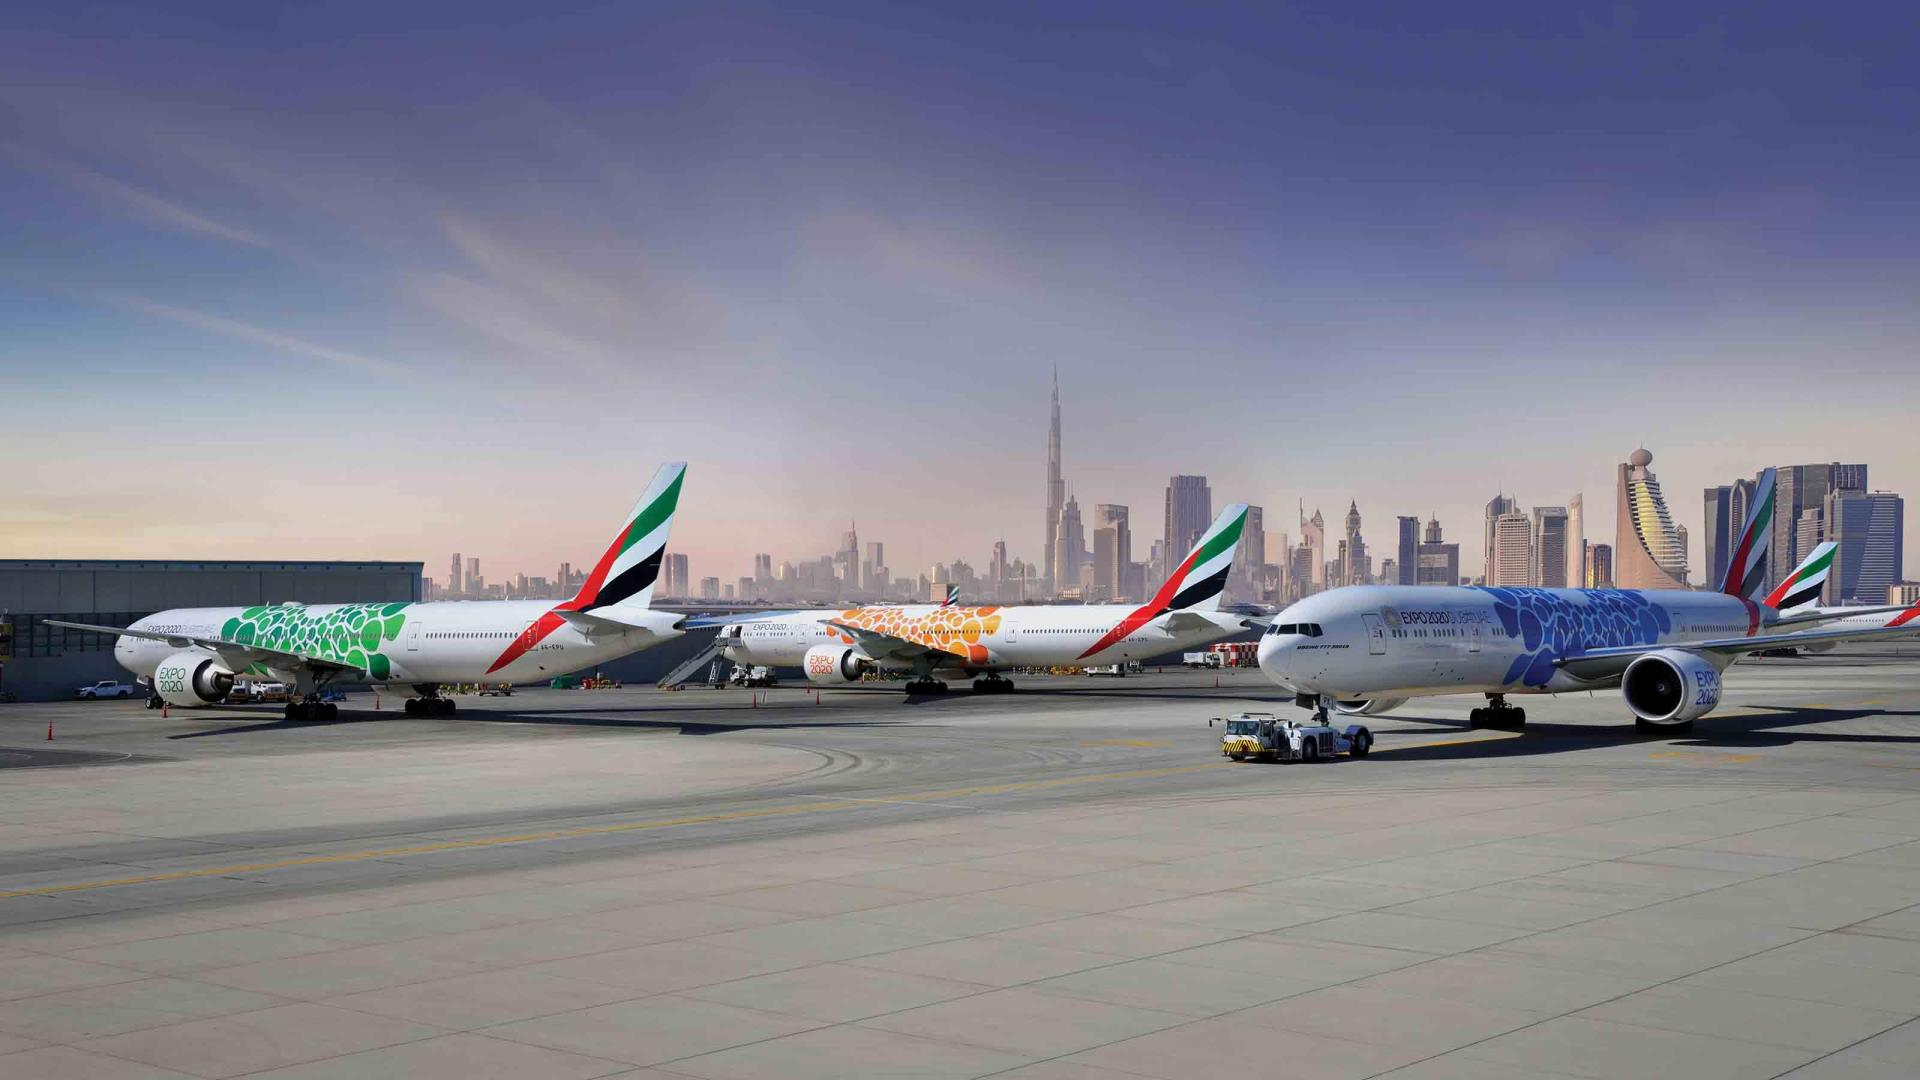 Emirates aircraft at Dubai airport